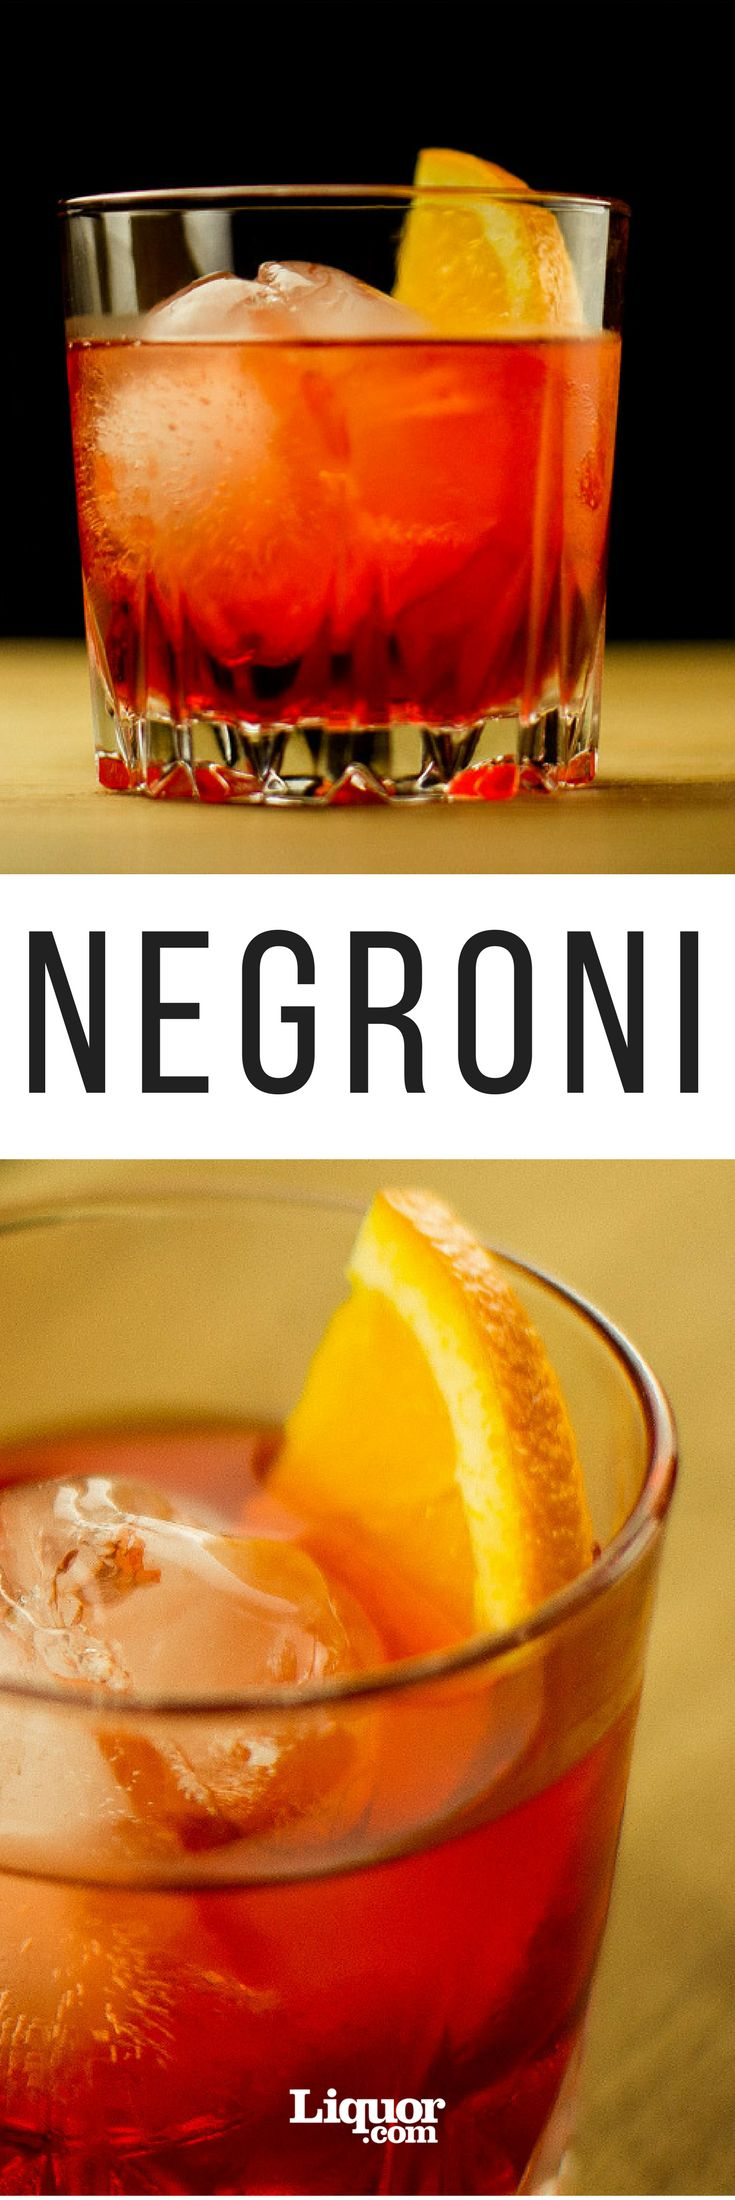 The Negroni recipe: Campari, Gin, & Sweet Vermouth. Just mix together to make the perfect red-hued drink, the Negroni. This three-ingredient Italian cocktail is as classic as a drink can get.